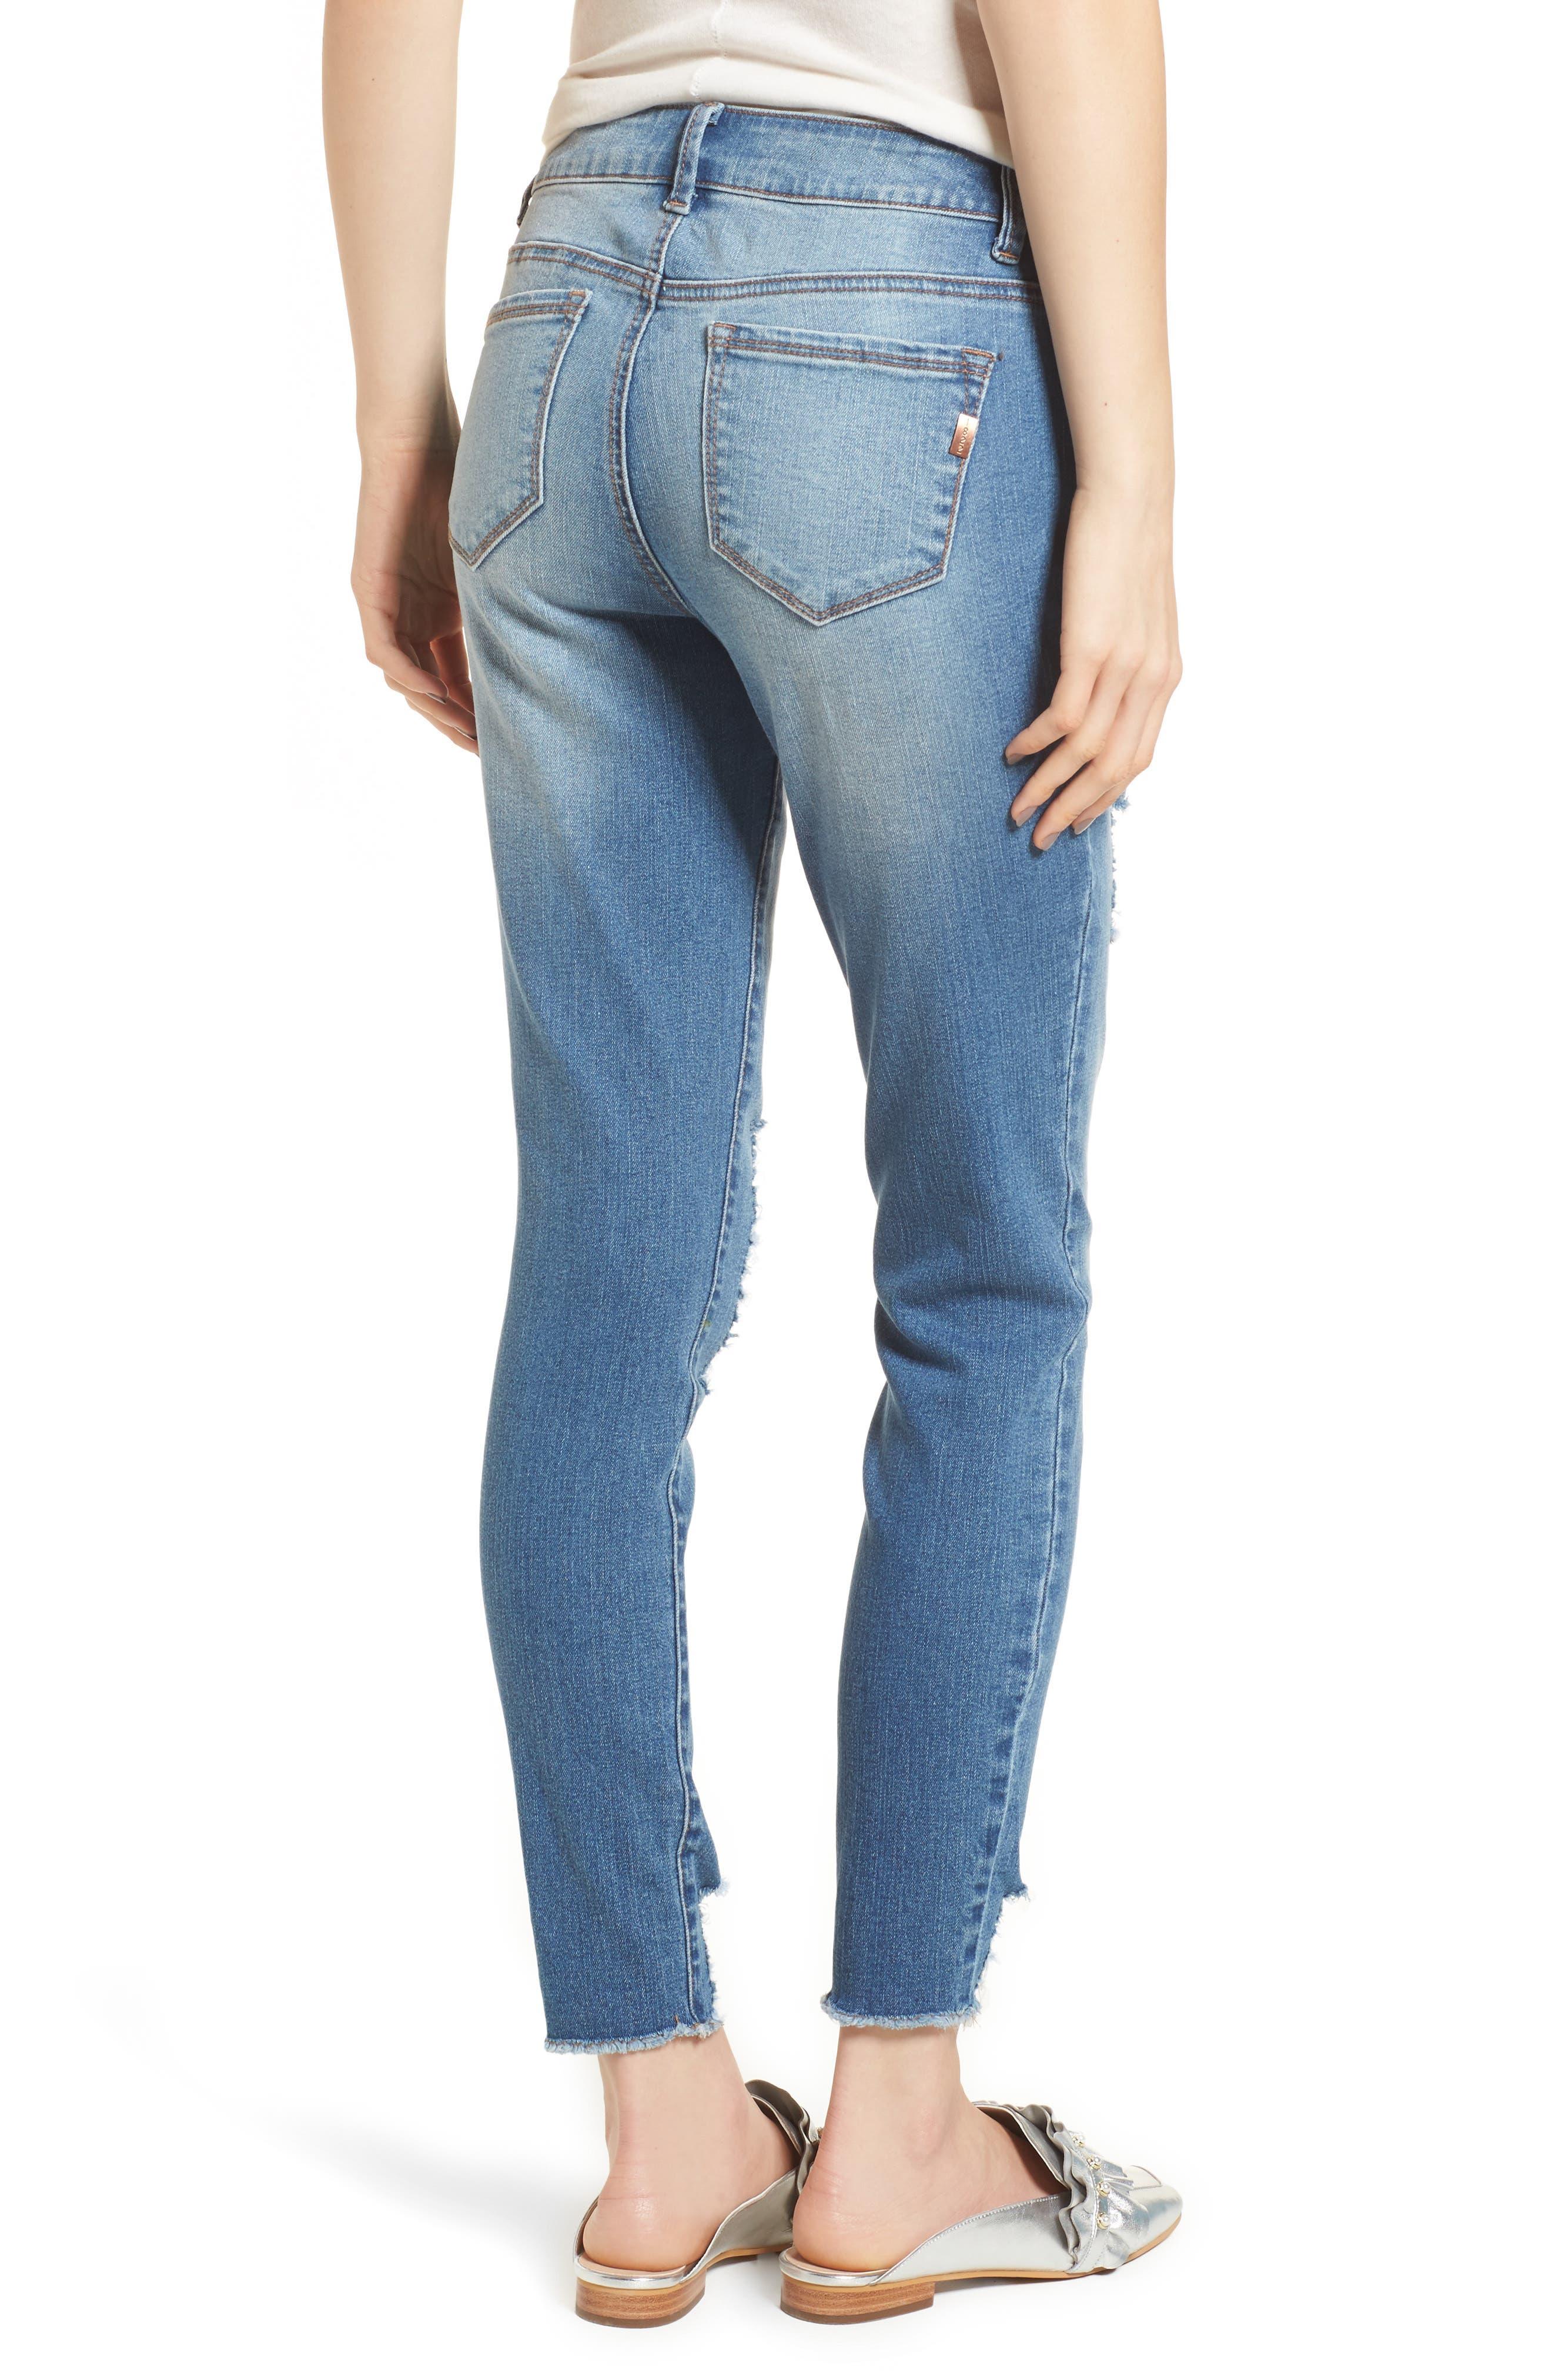 Decon Ripped Skinny Jeans,                             Alternate thumbnail 2, color,                             426